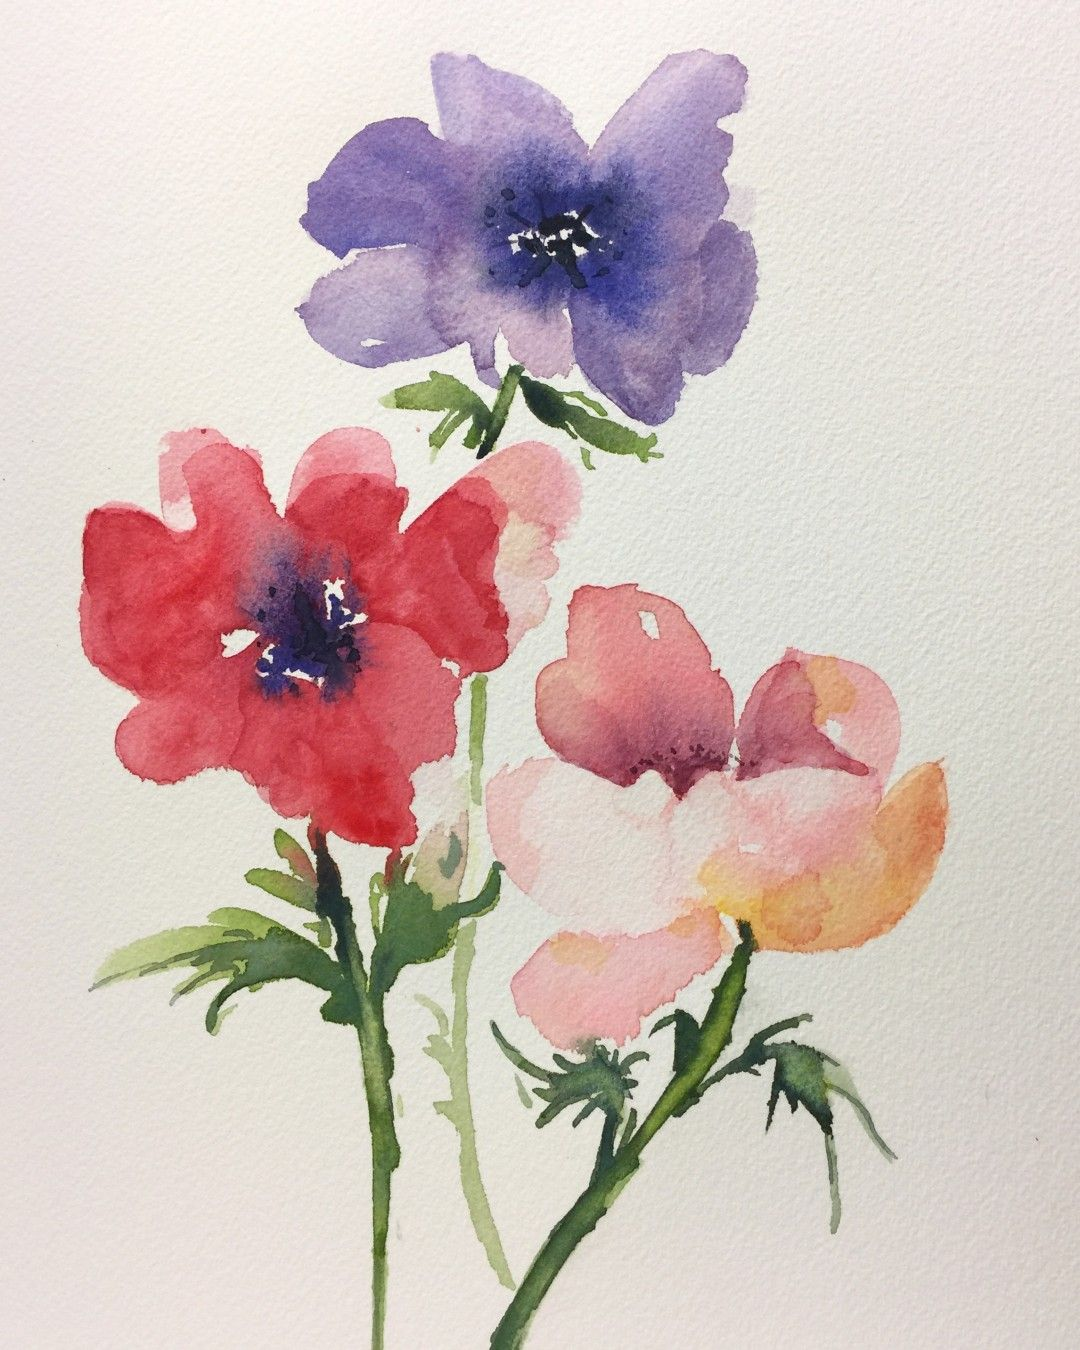 Pin By Karin Lauria On My Watercolor And Illustration Flower Art